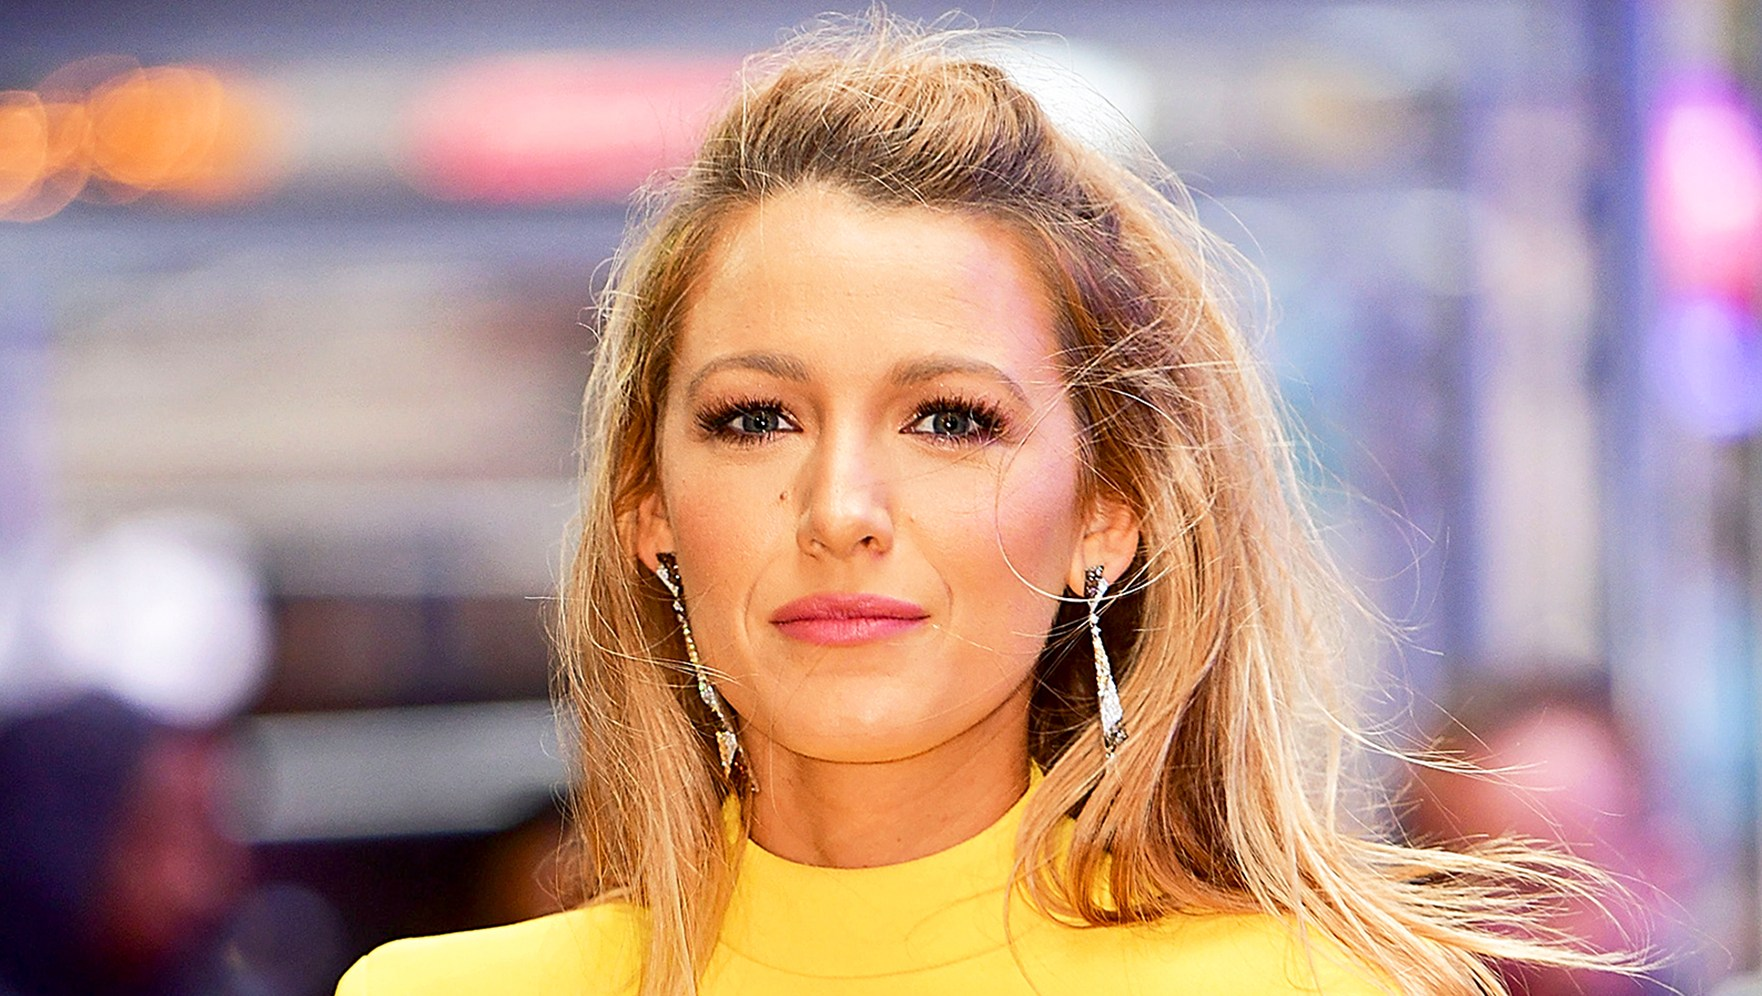 Blake Lively arrives to 'Good Morning America' in New York City.